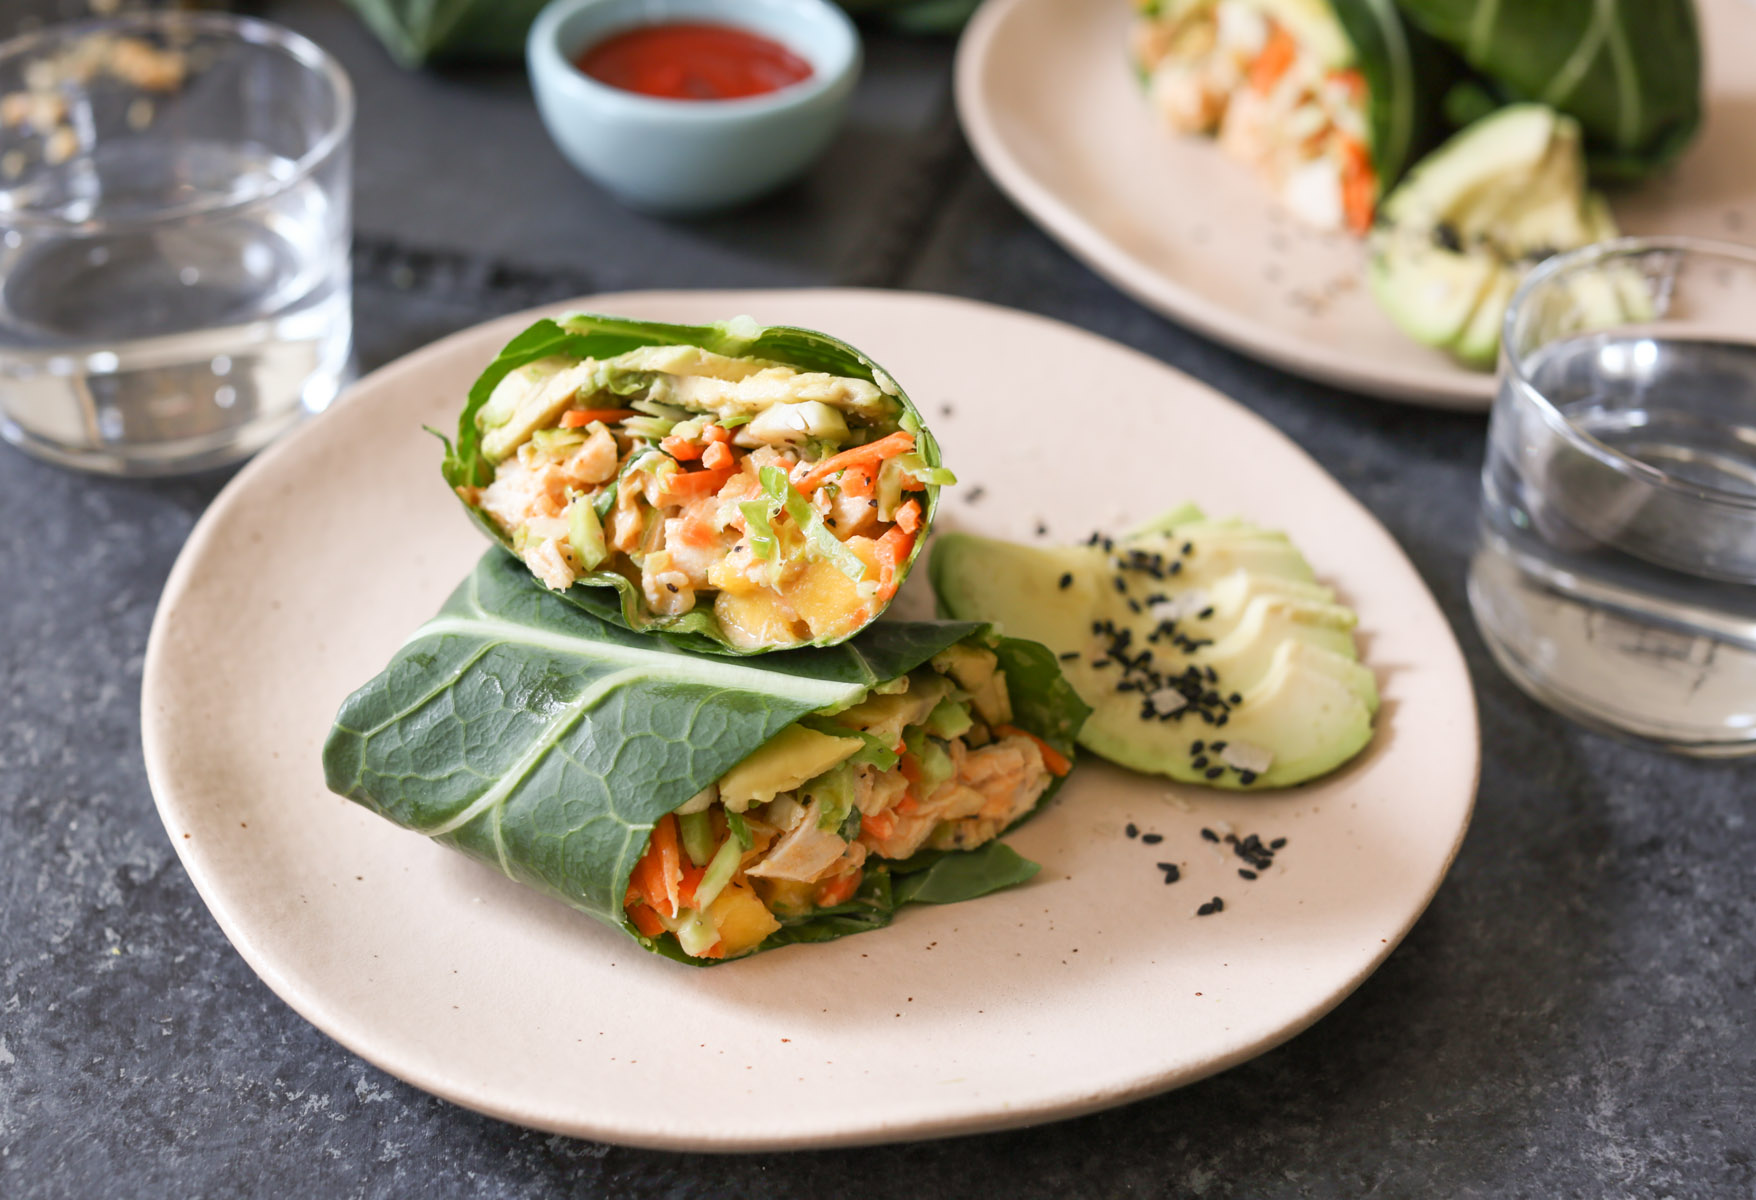 sriracha-chicken-salad-collard-wraps-with-mango-avocado-and-slaw-7